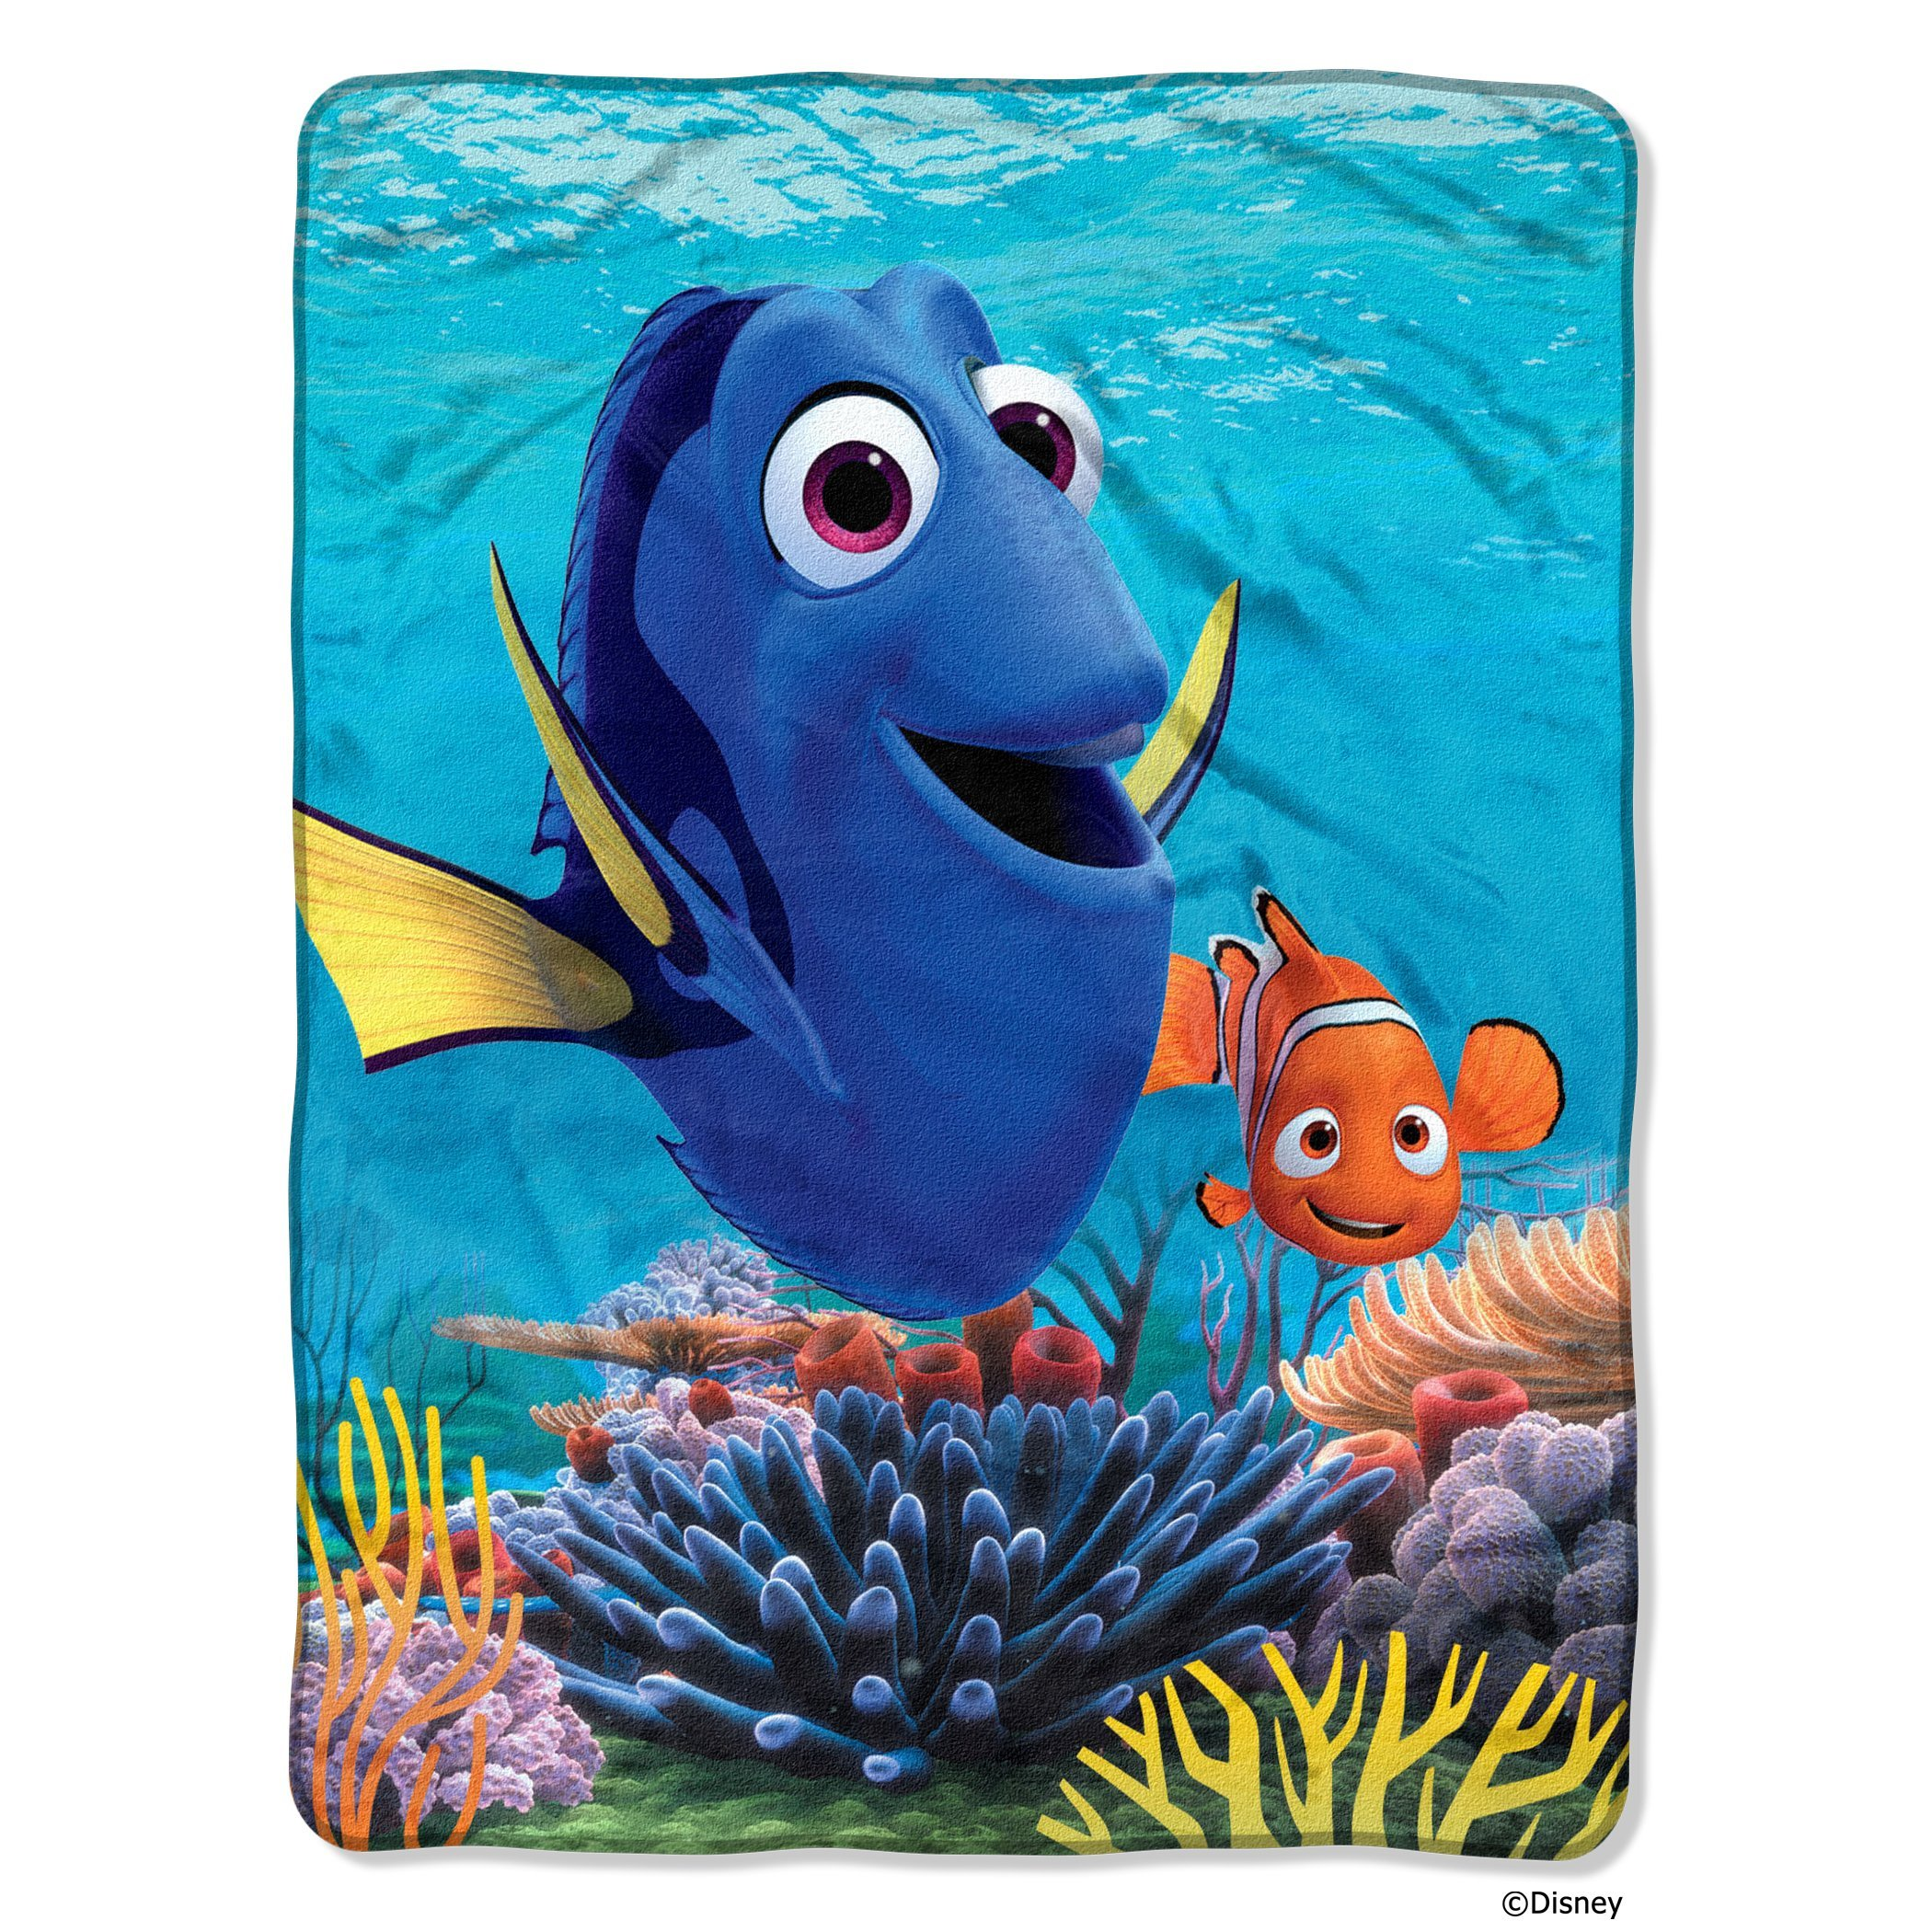 Northwest Disney Pixar Finding Dory, Deep Sea Silk Touch Throw by The Company, 46'' by 60''